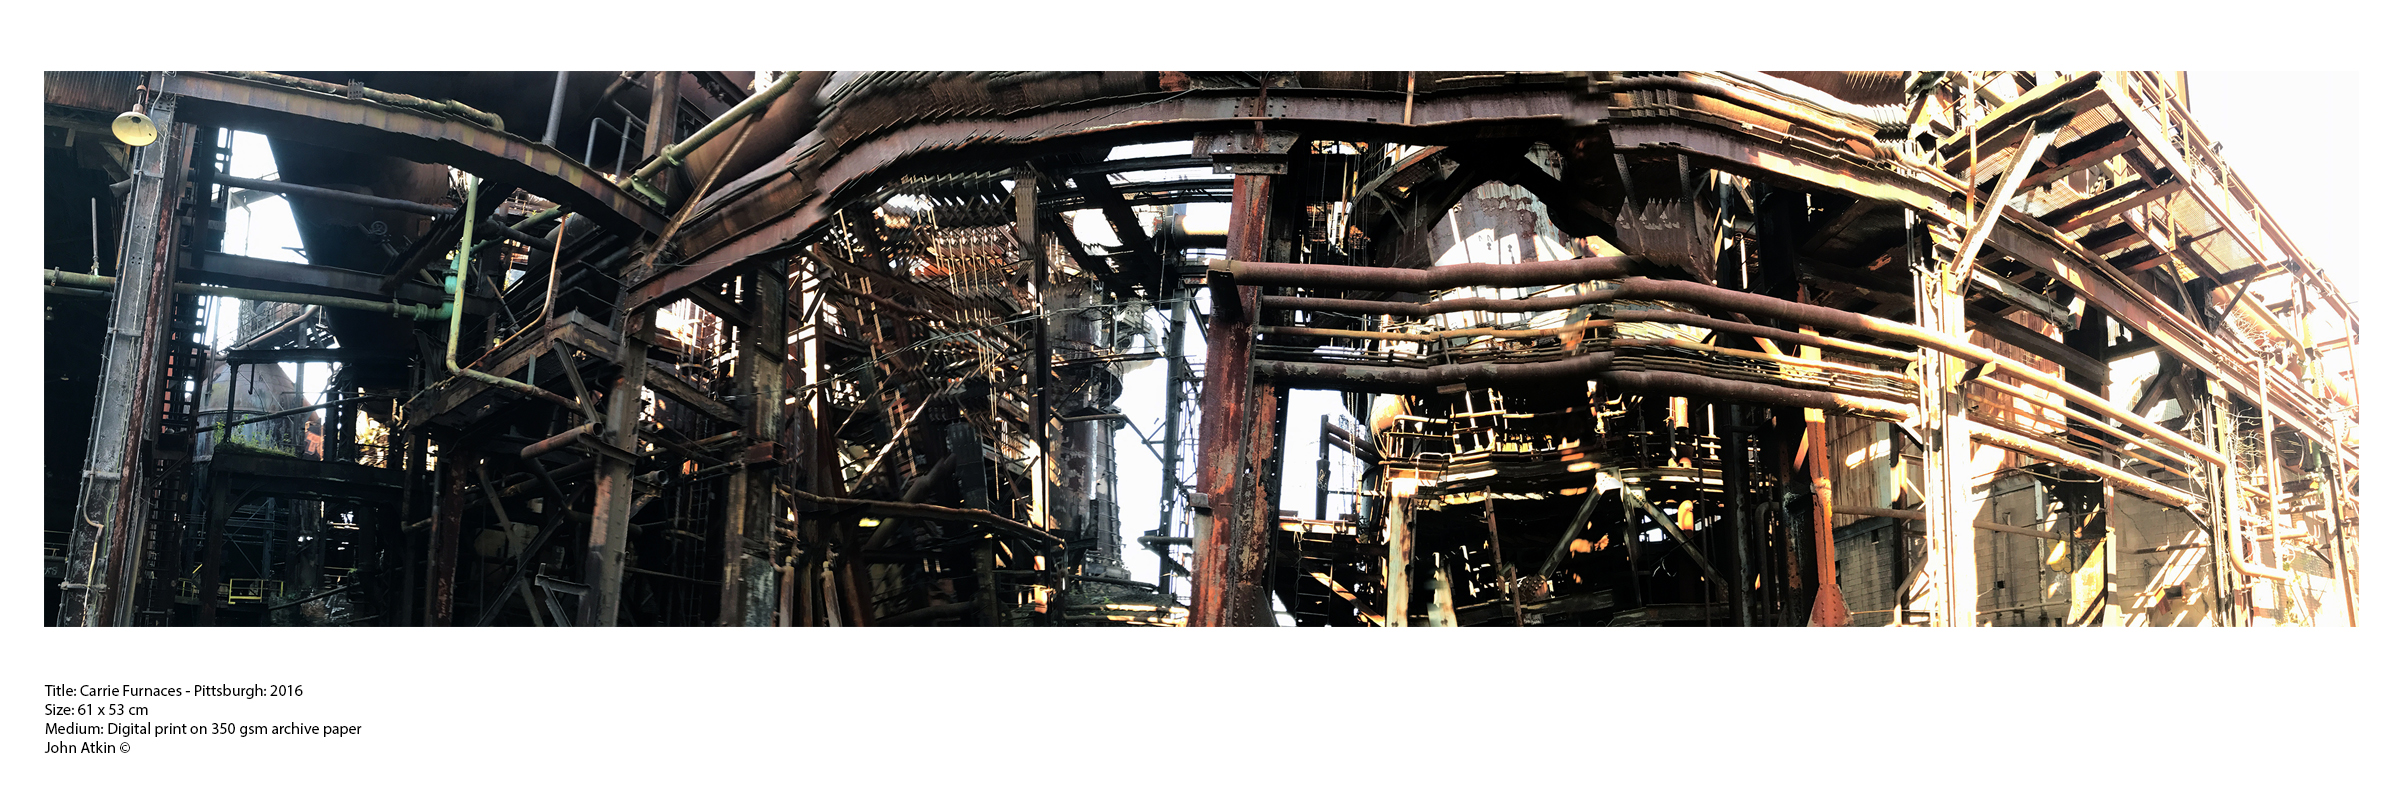 Carrie Furnaces: 2016